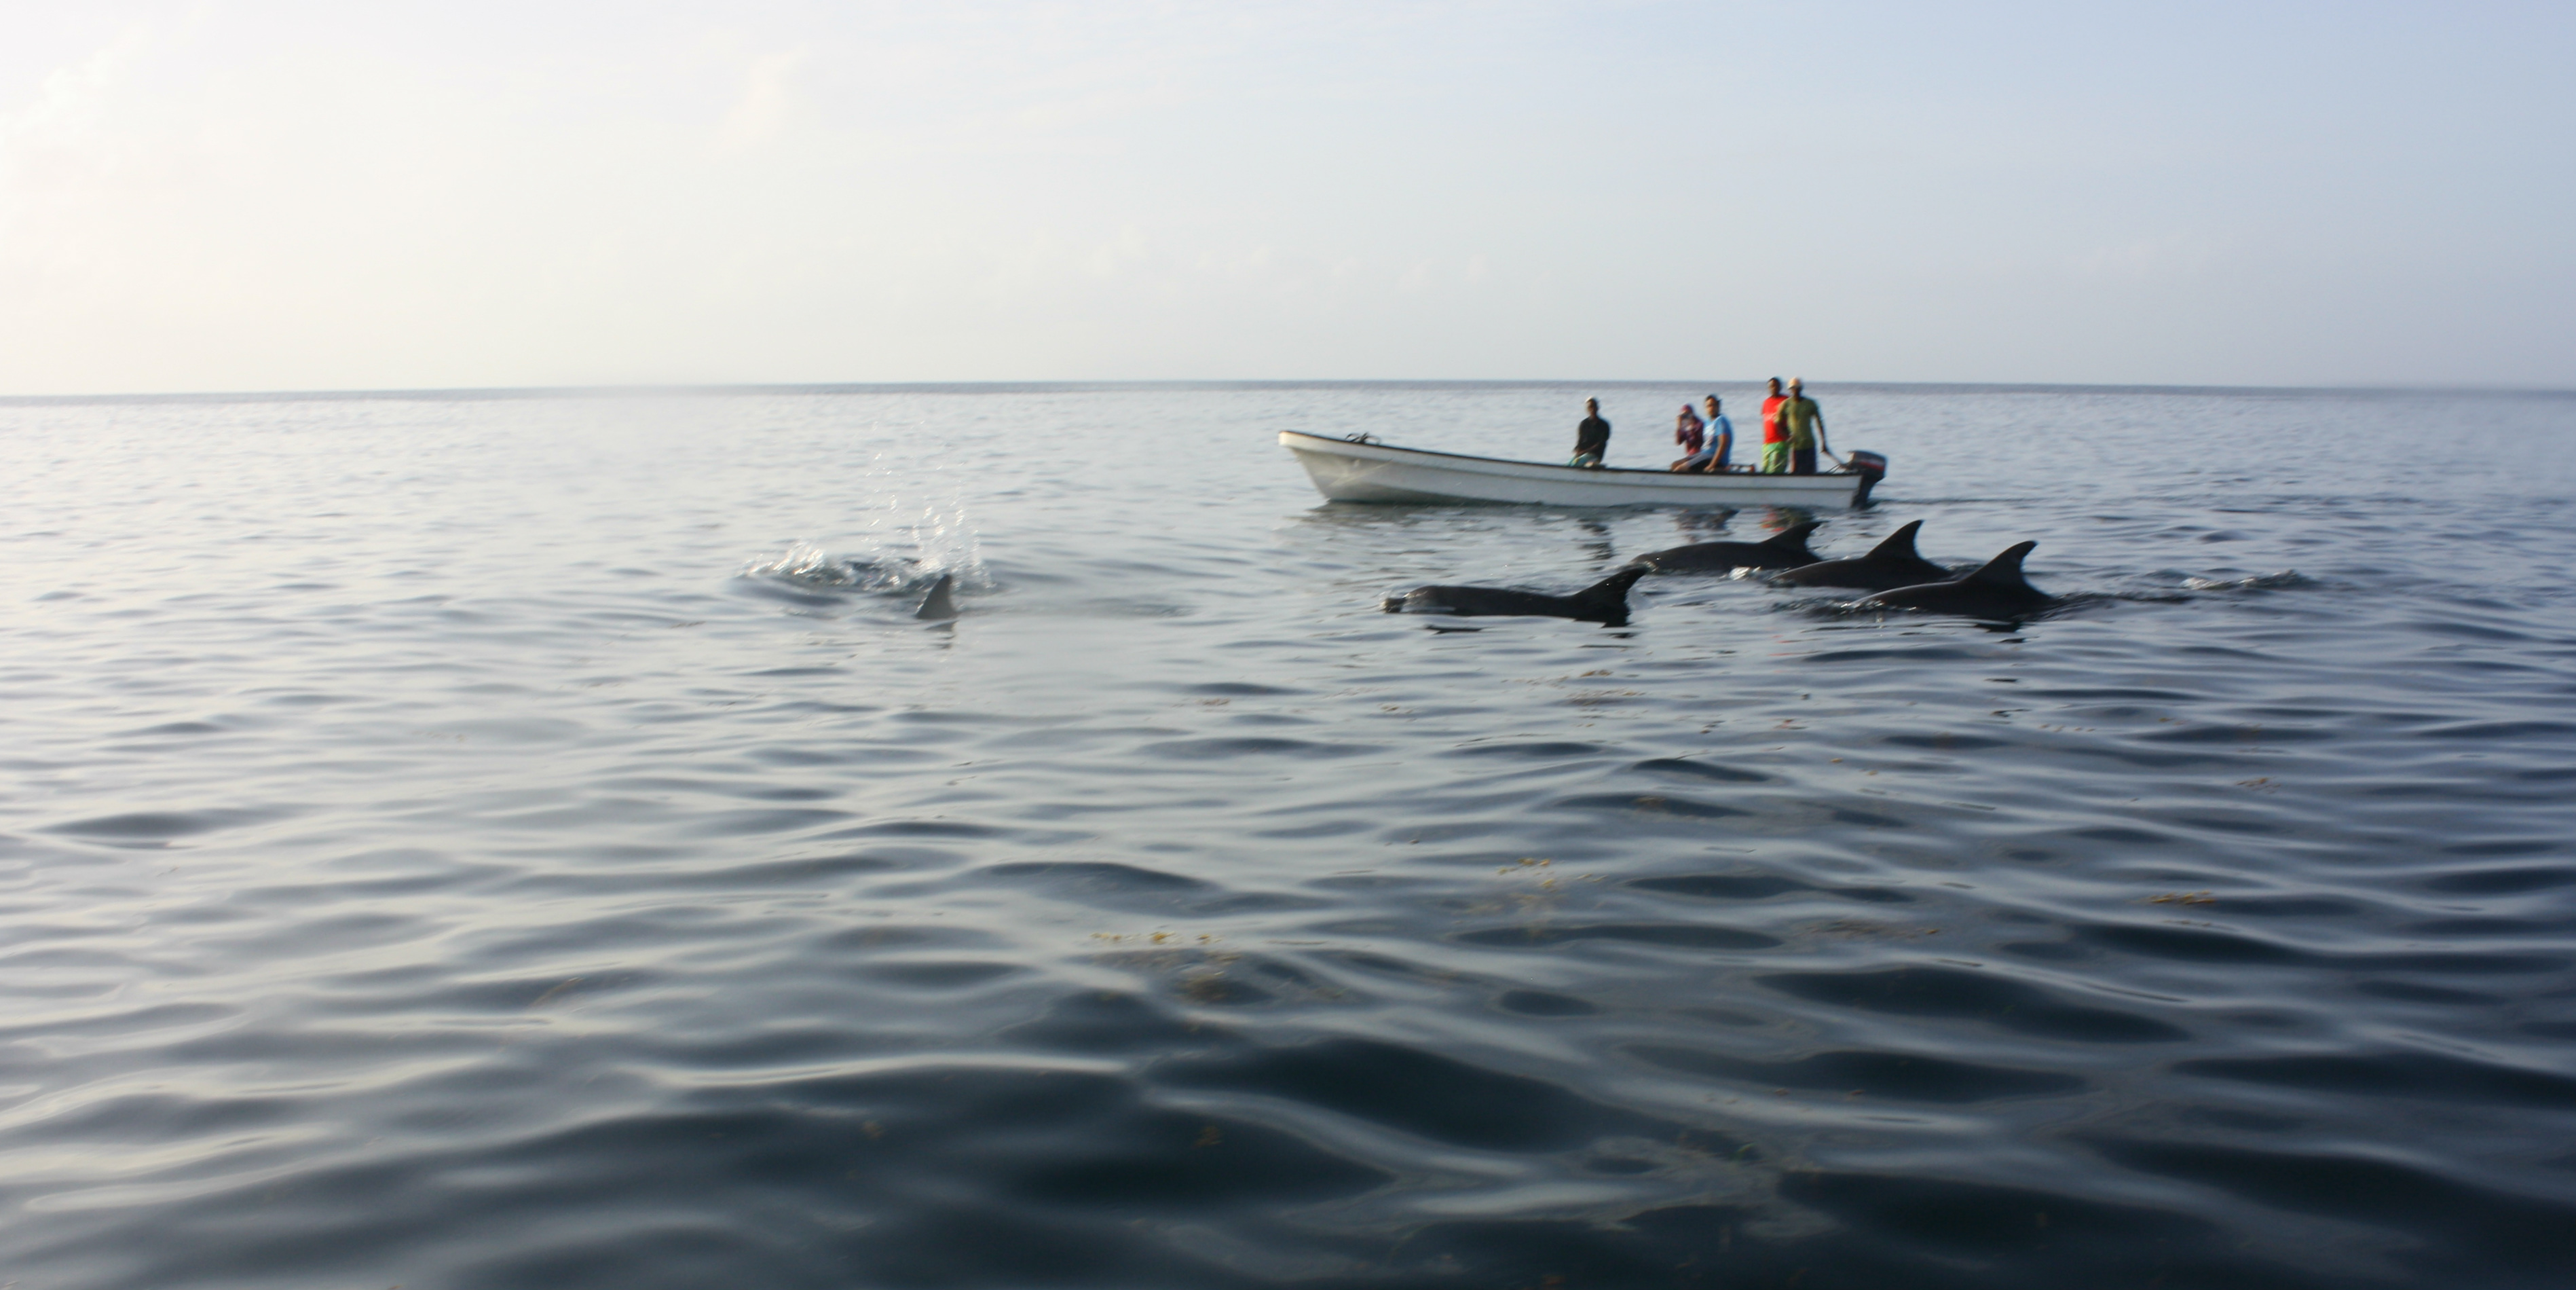 While on an animal volunteer vacation in Zanzibar, you could help to collect data on dophin like these.